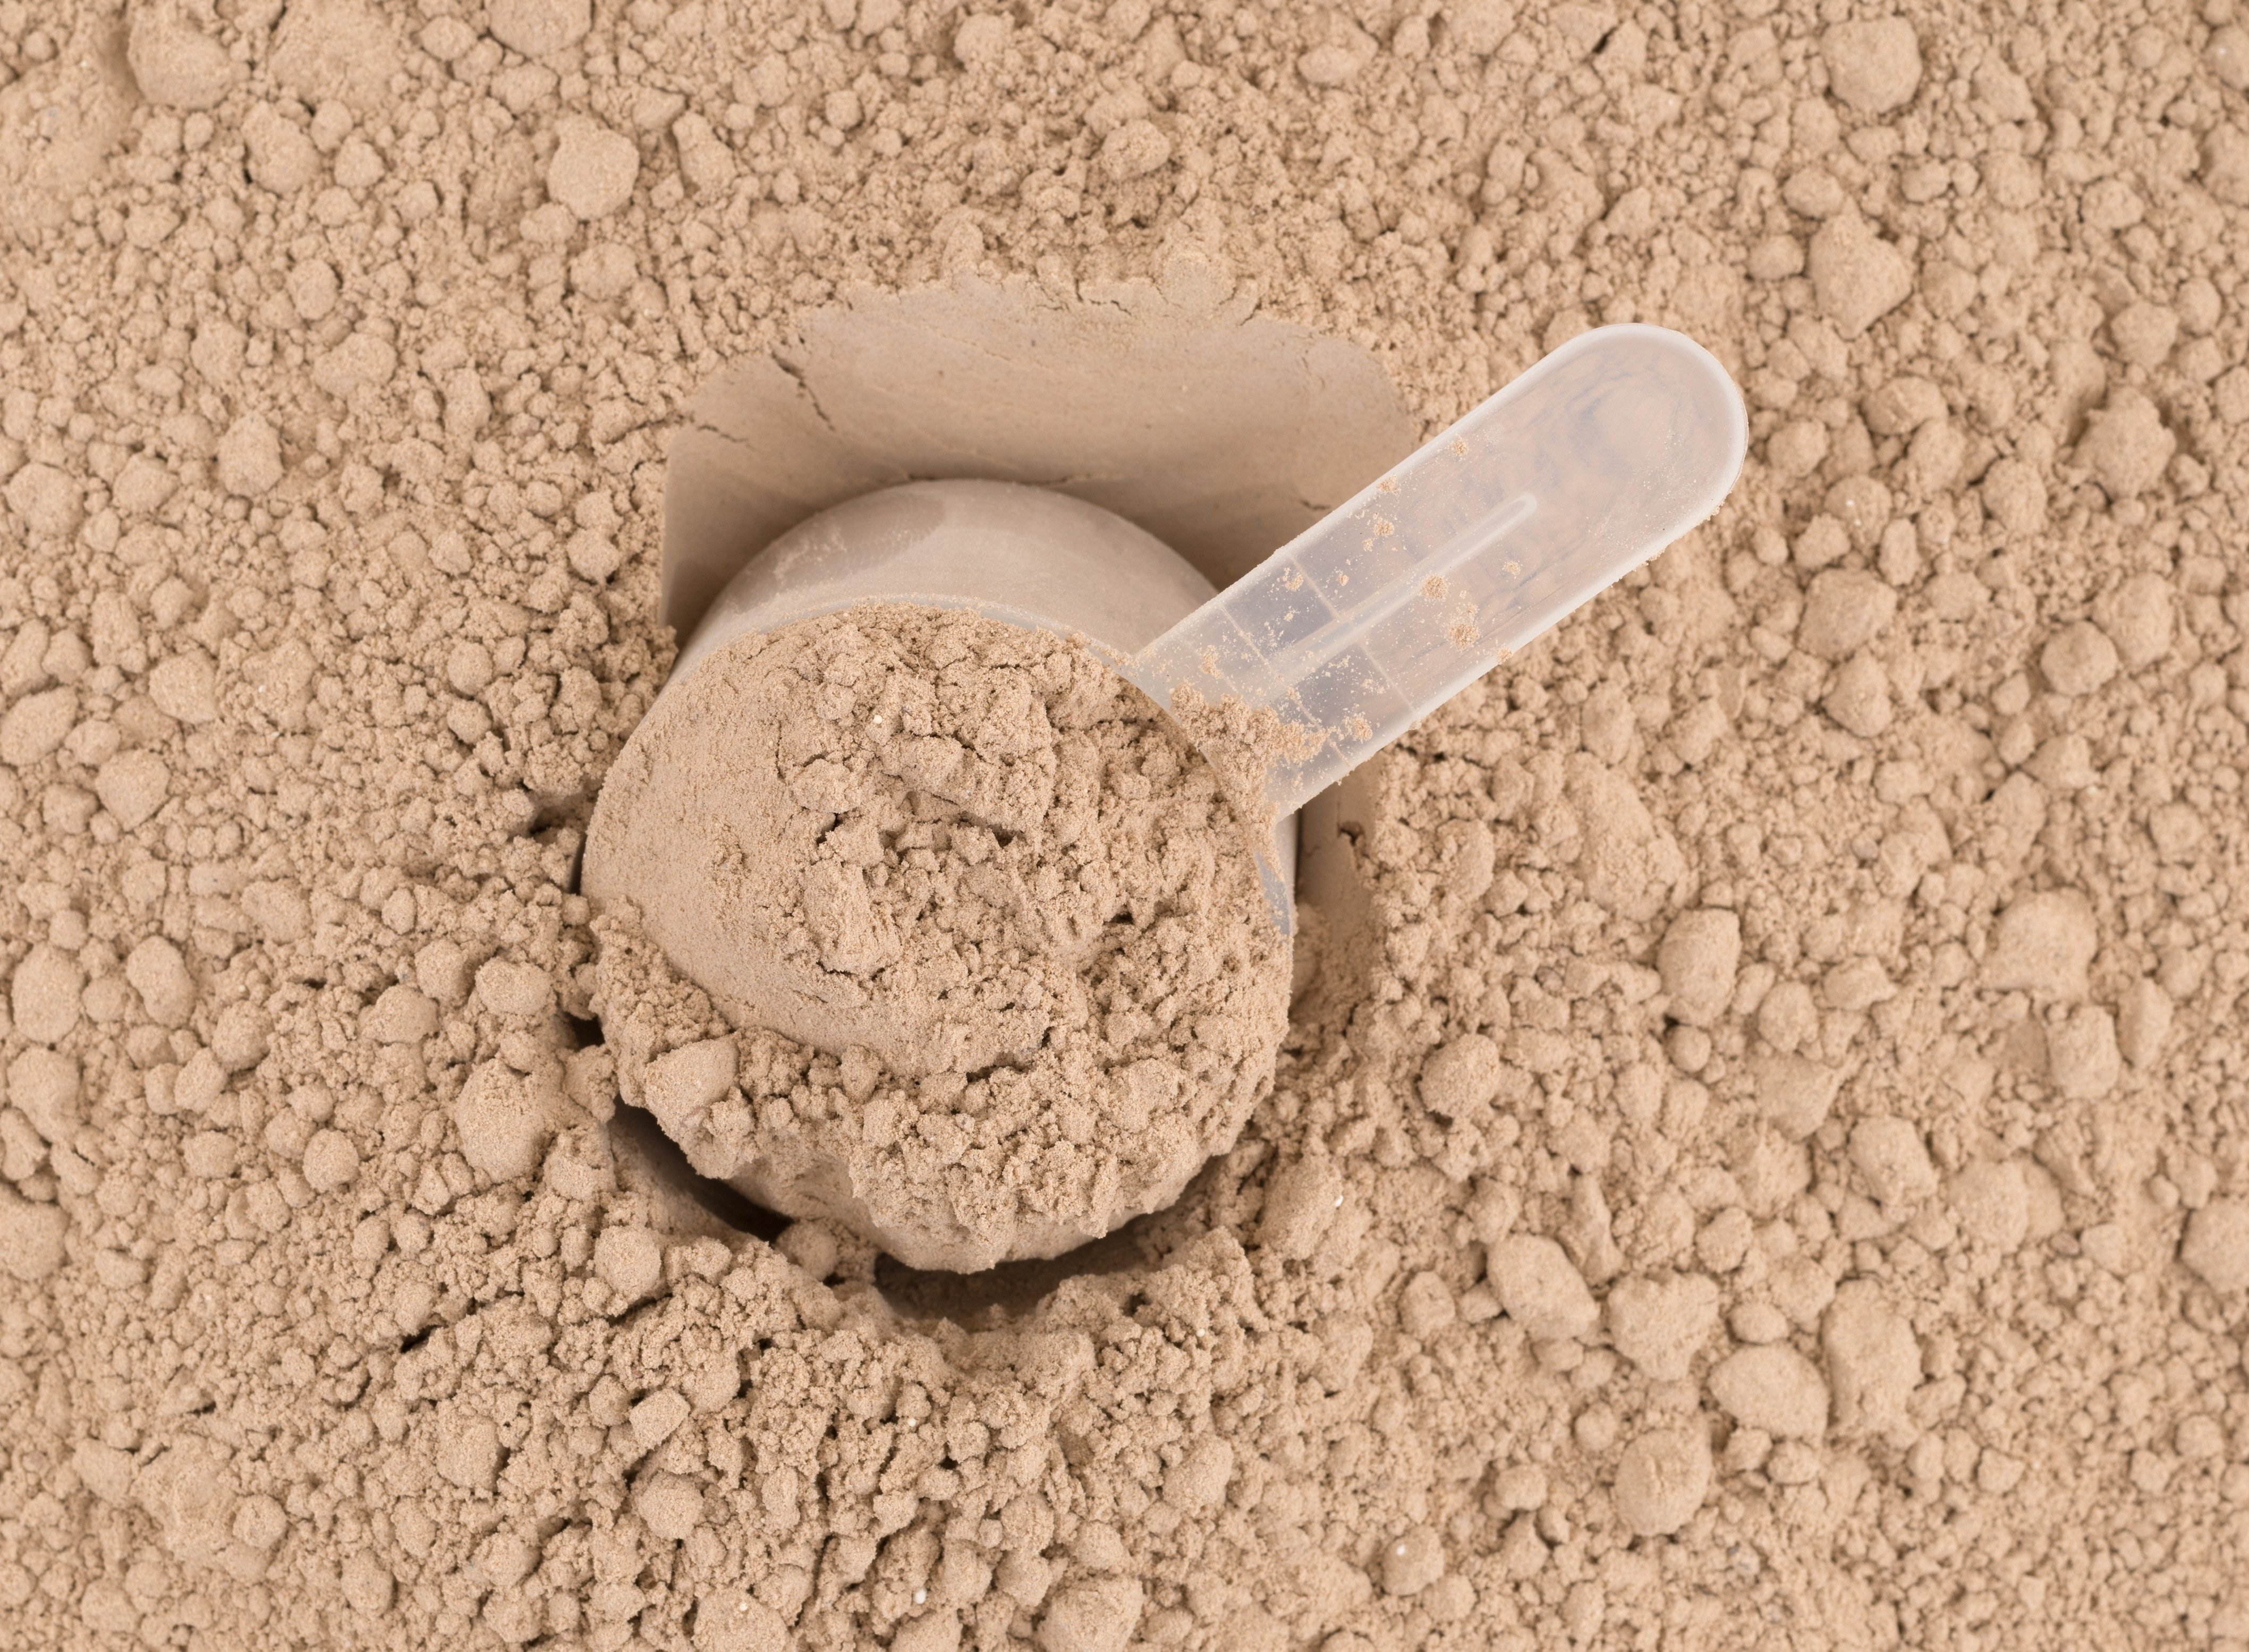 Top close of ground chocolate flavored plant protein with a plastic measuring scoop.